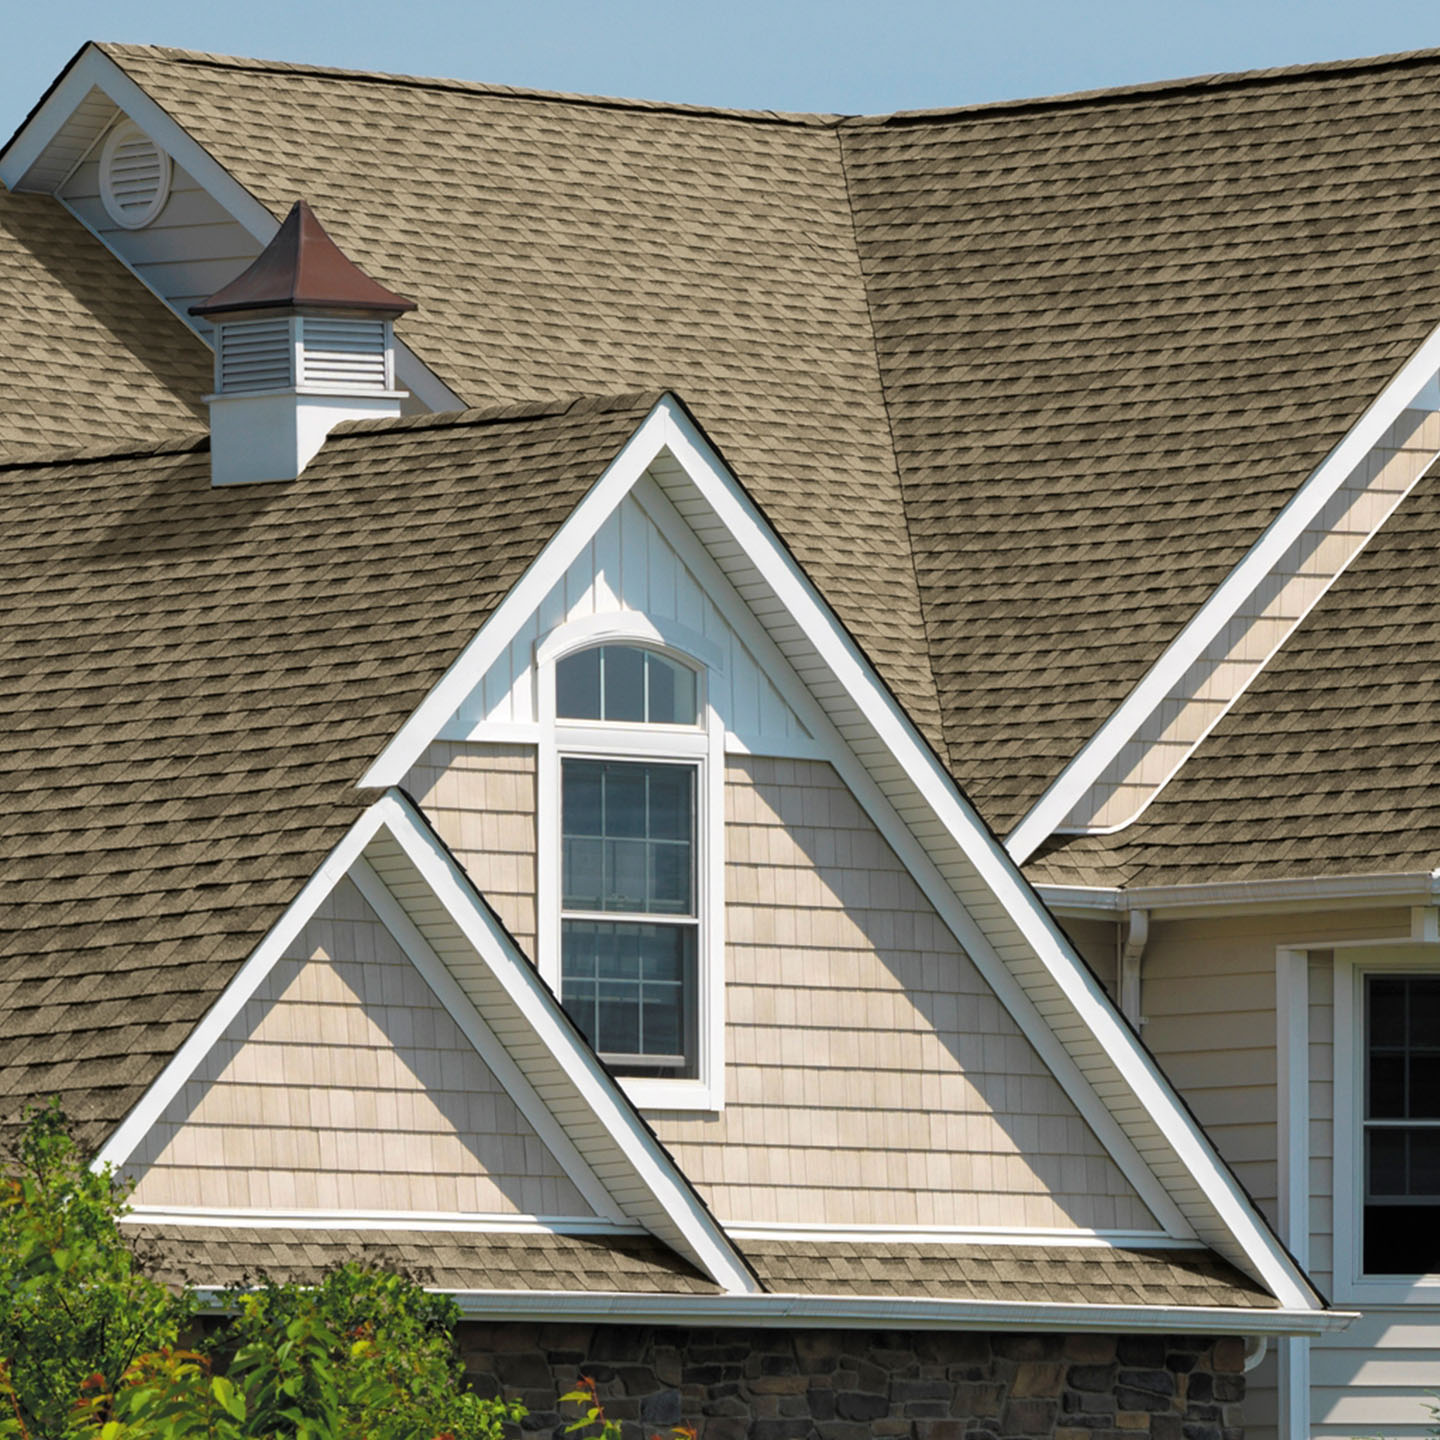 GAF's Timberline HD Weathered Wood Roof